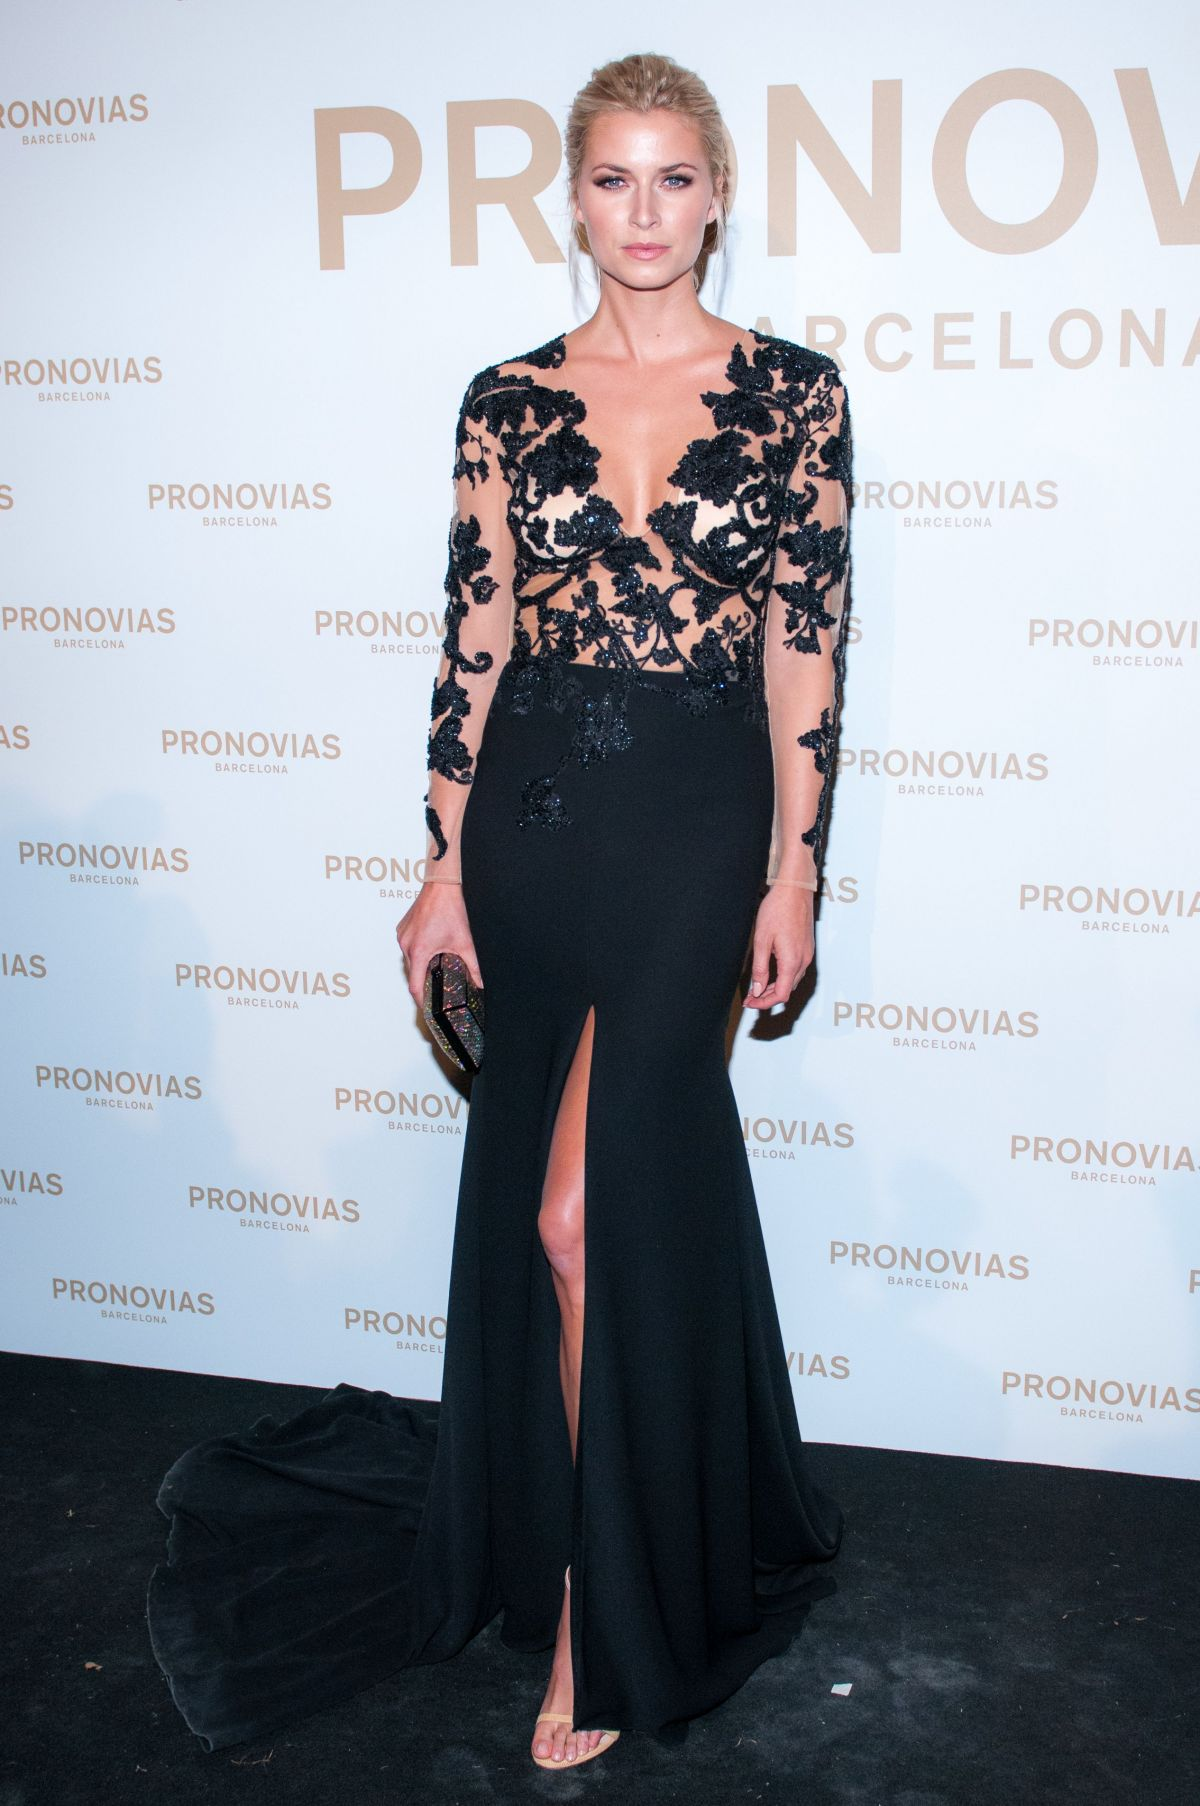 LENA GERCKE at Barcelona Photocall at Pronovias Catwalk Show 04/28/2017